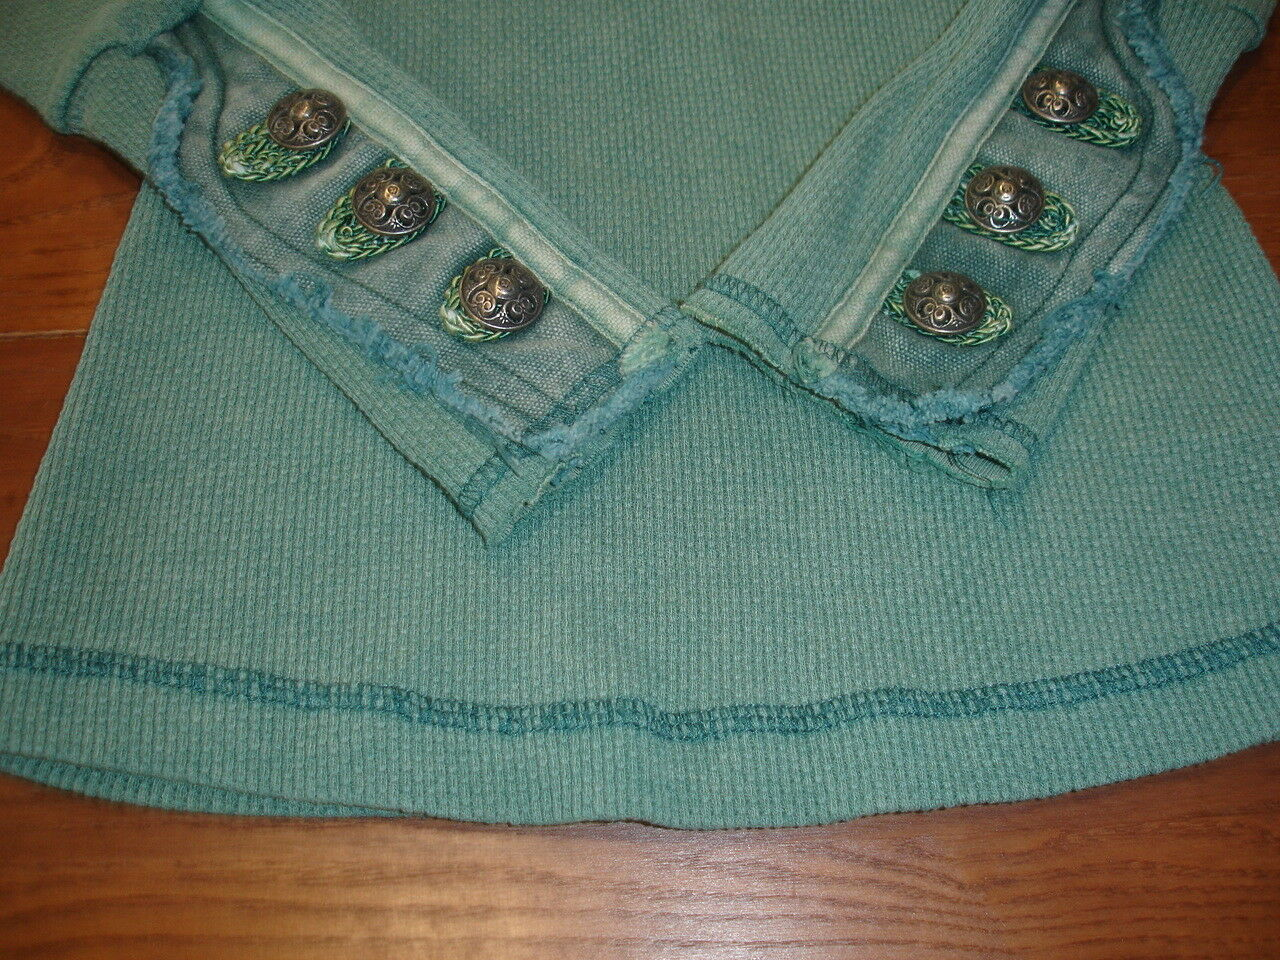 FREE PEOPLE EMERALD EMBELLISHED DISTRESSED DENIM CELTIC BUTTON MOTO CUFF THERMAL